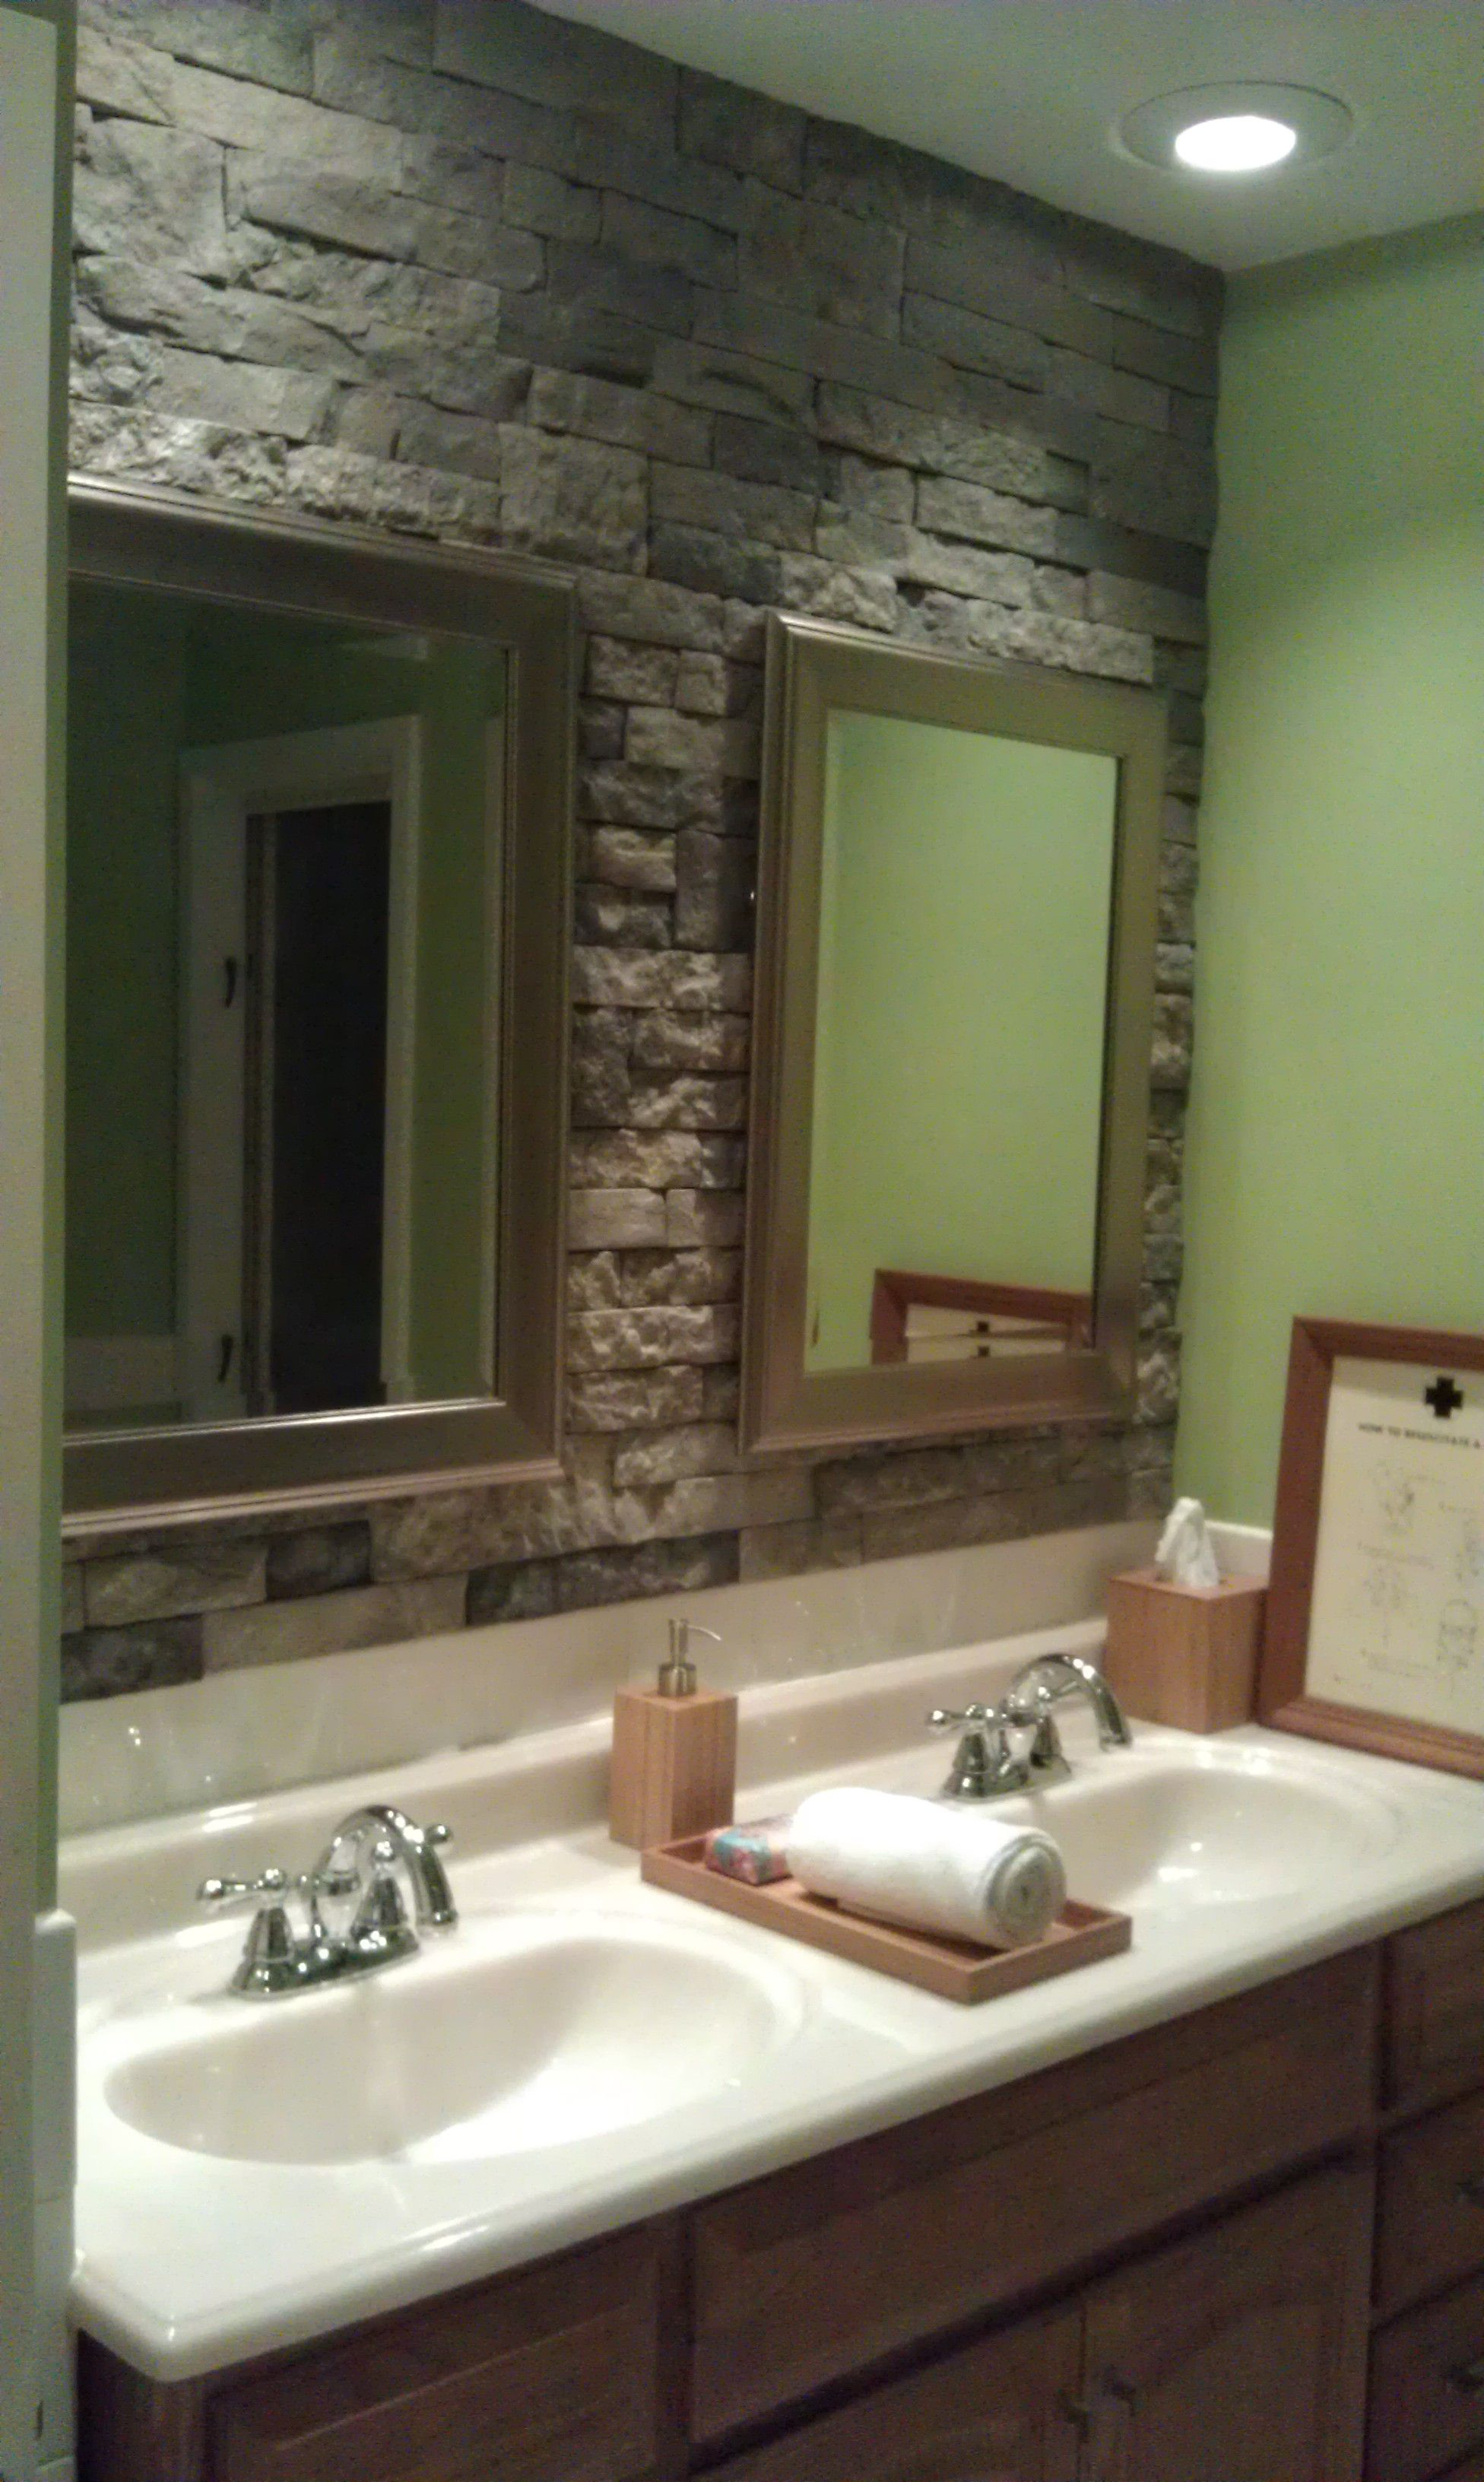 Backsplash Accent Ideas Airstone Stone Accent Wall In Bathroom Can 39t Wait To Do